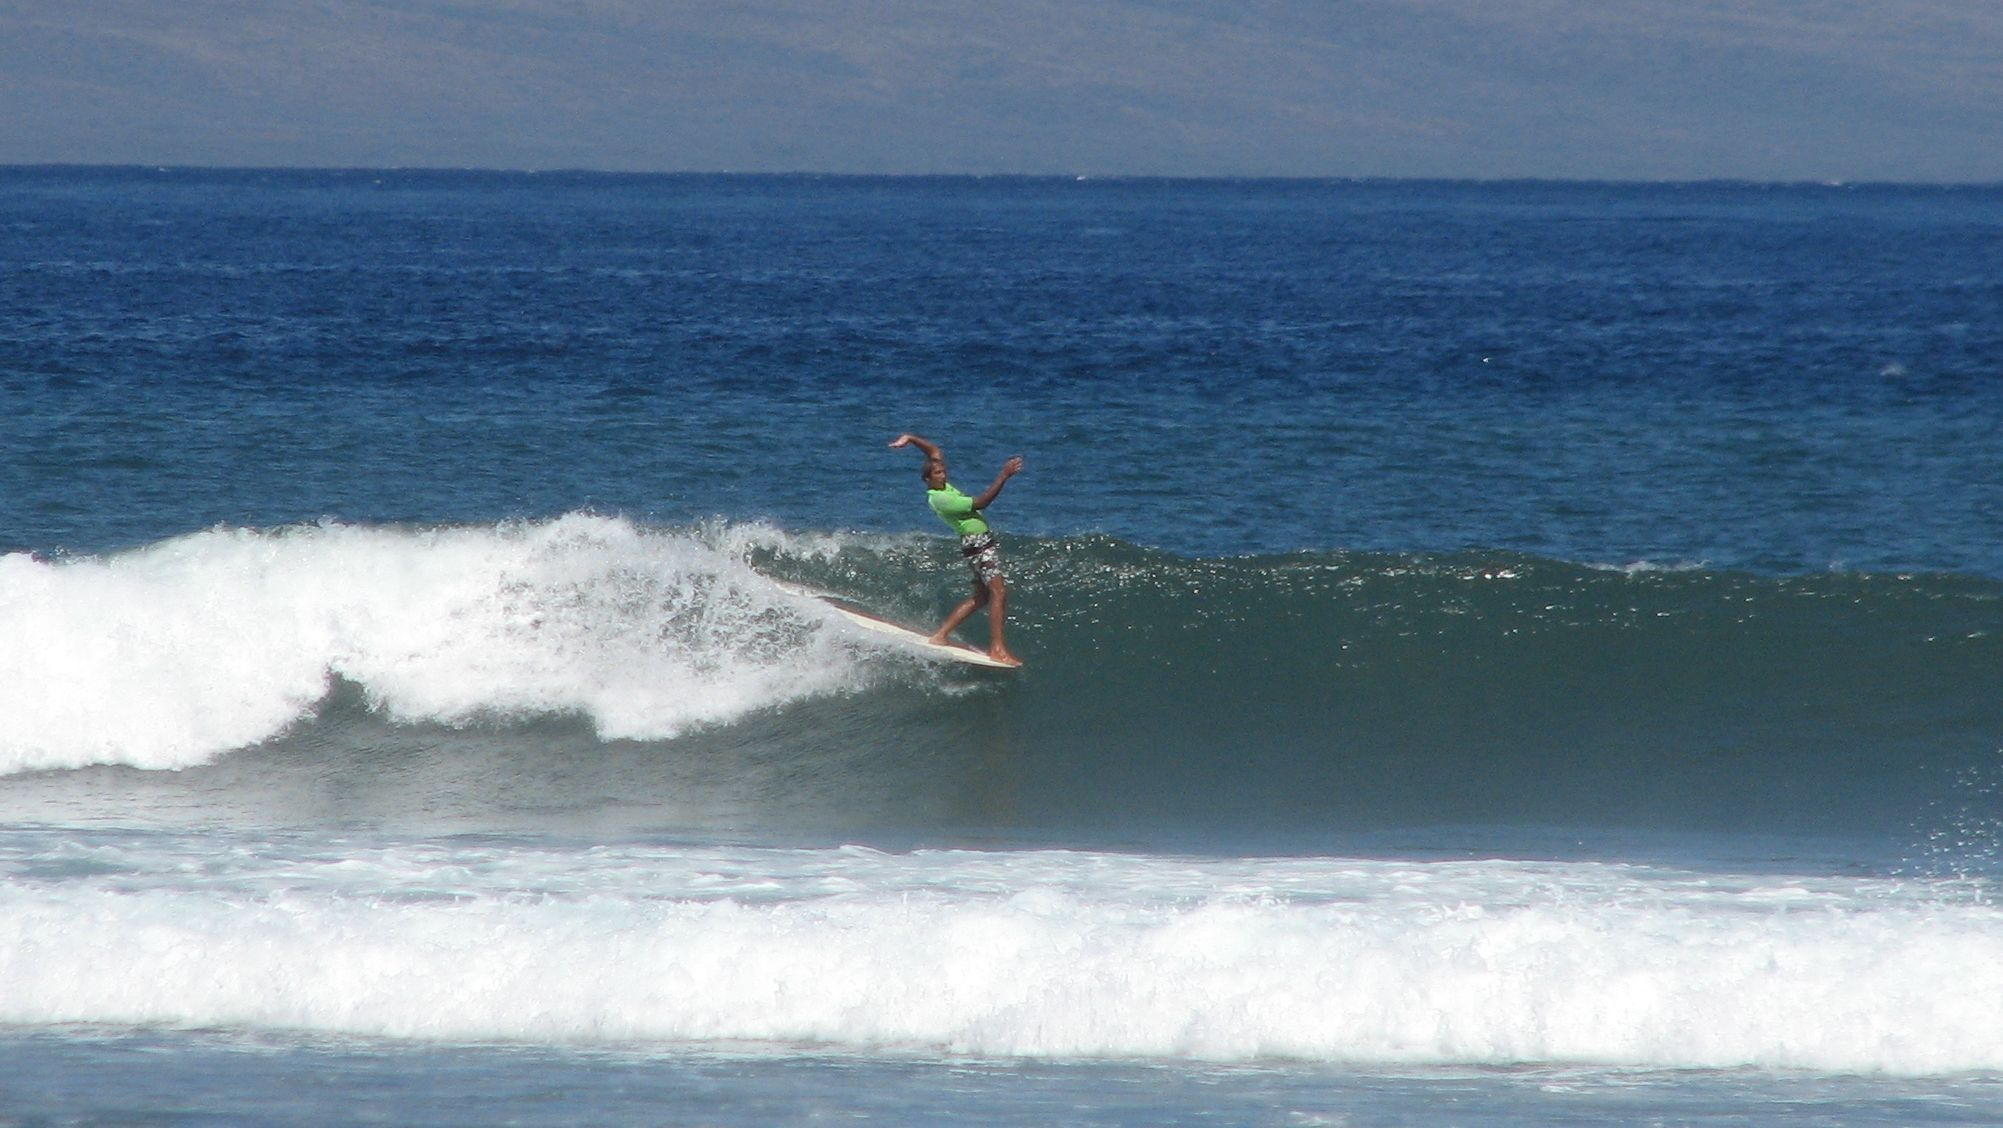 seedicksurf.com - Maui Daily Surf shots and the Maui surf report!!